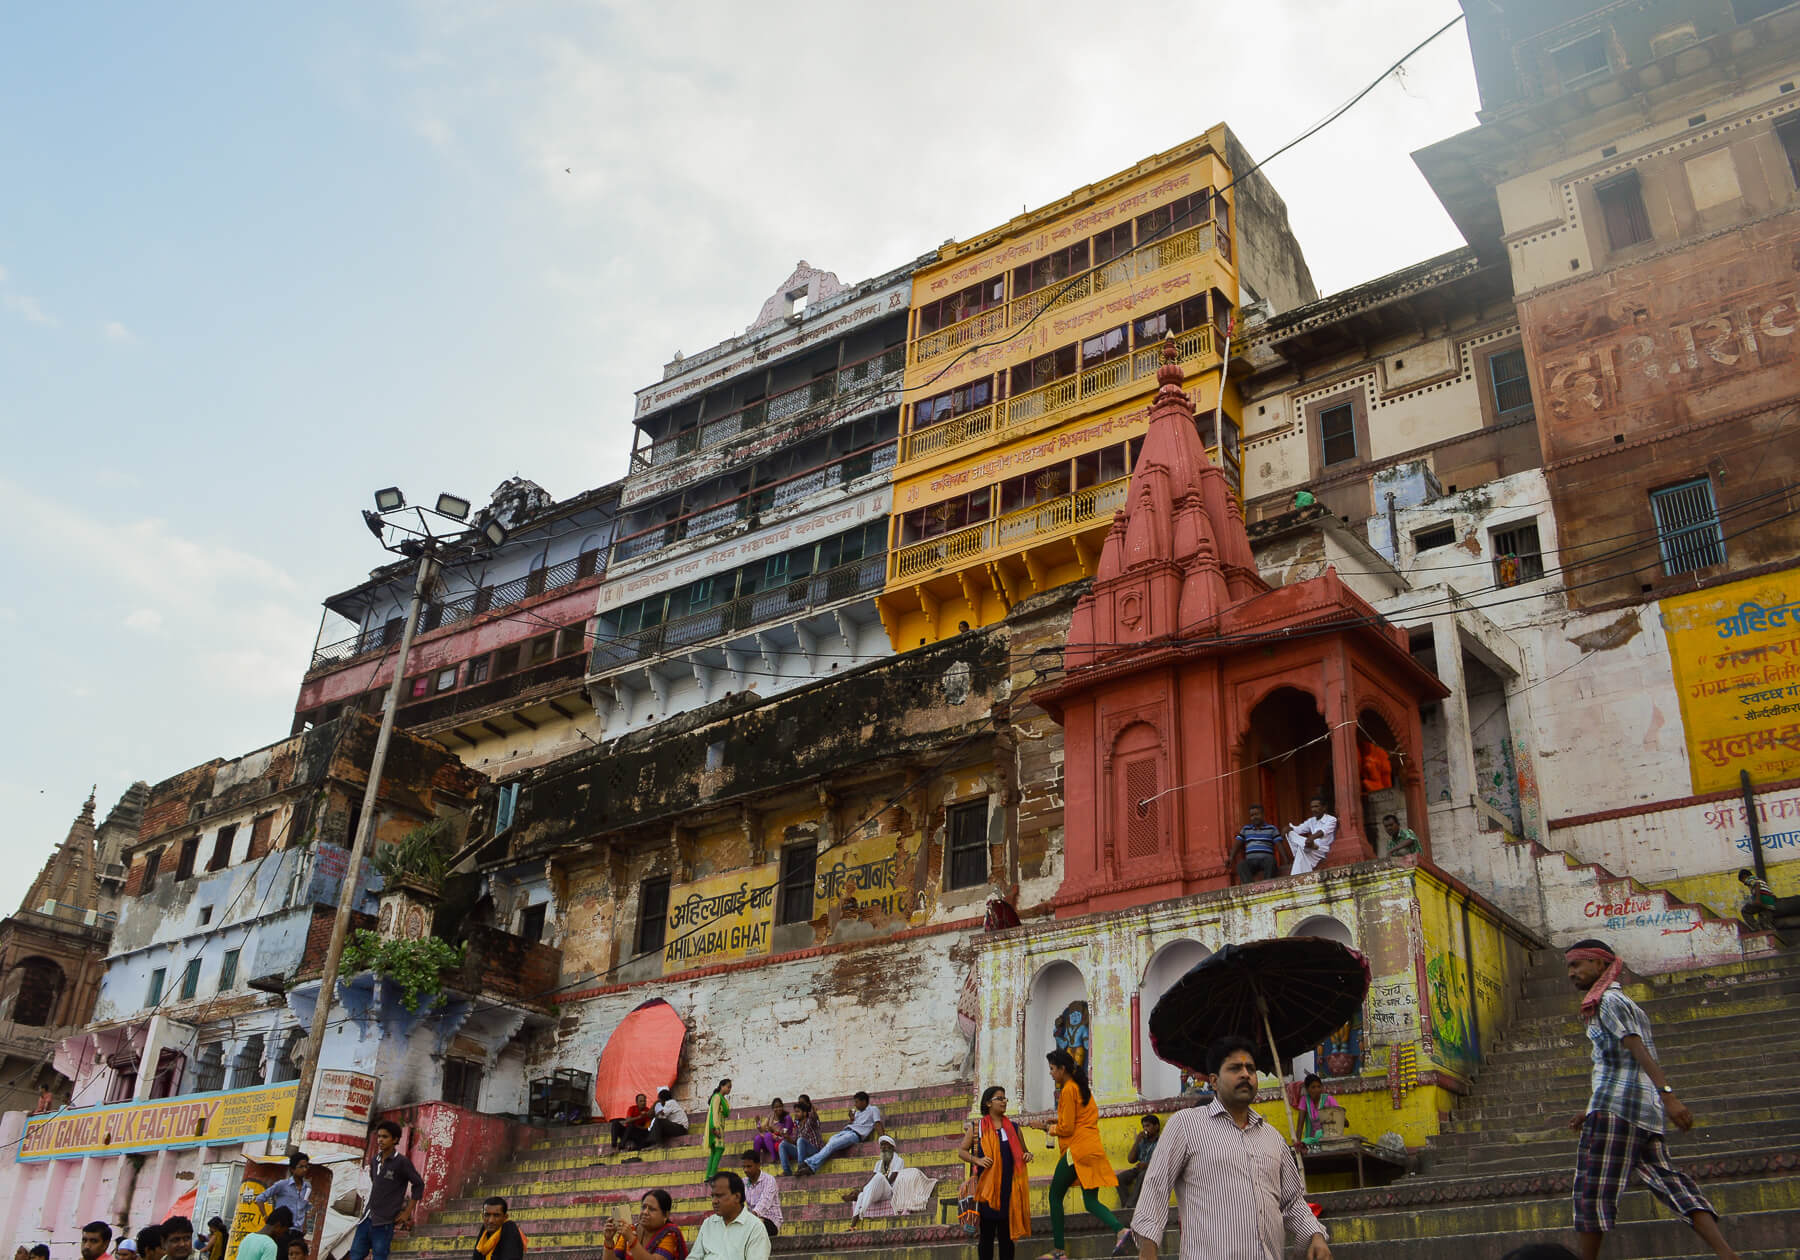 Old, rainbow buildings and temples along the Varanasi River